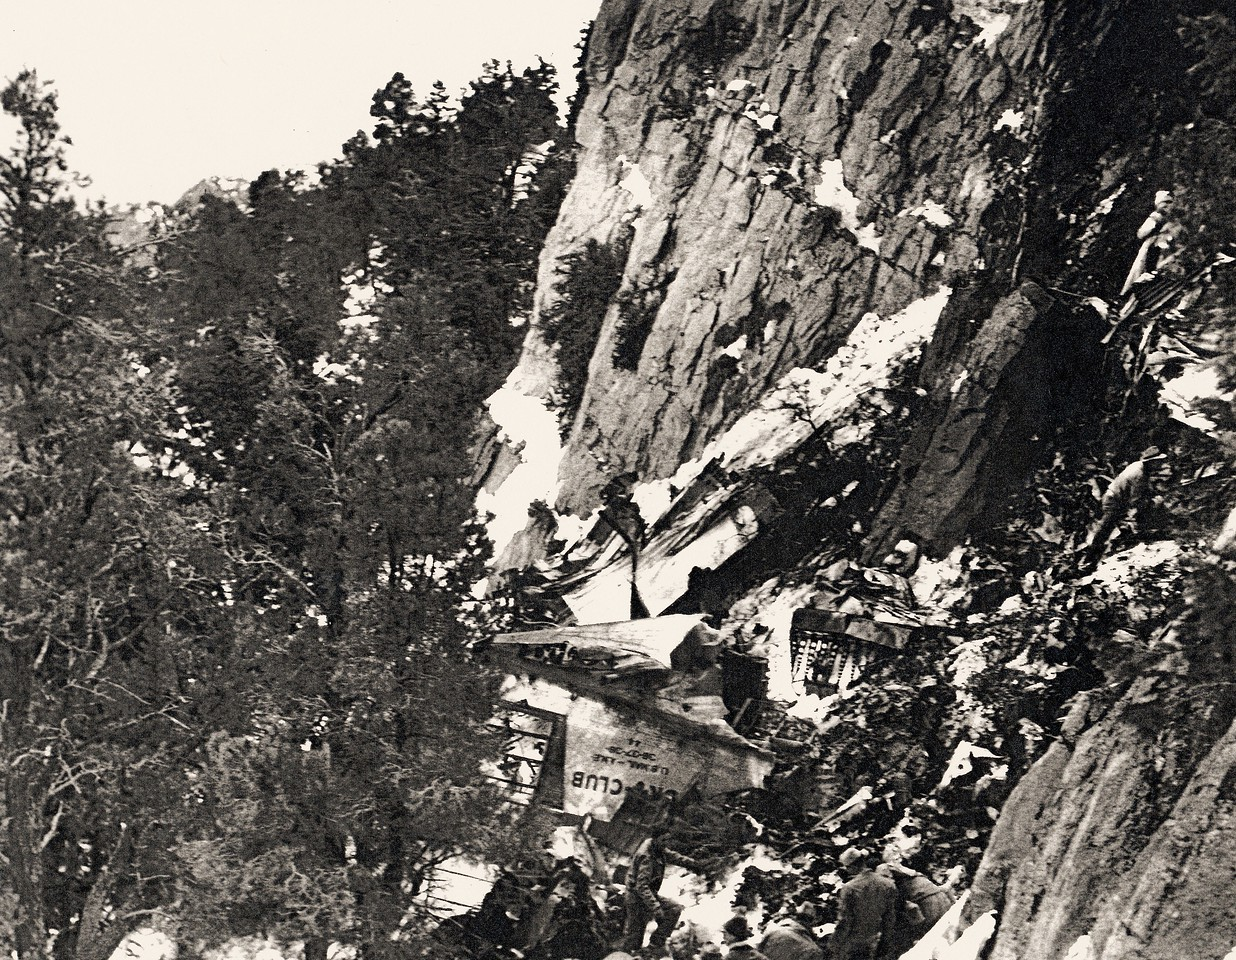 This overview of the crash site not only illustrates the destructive forces involved, but also the steep rugged terrain of Potosi Mountain. (Bettman Archives)